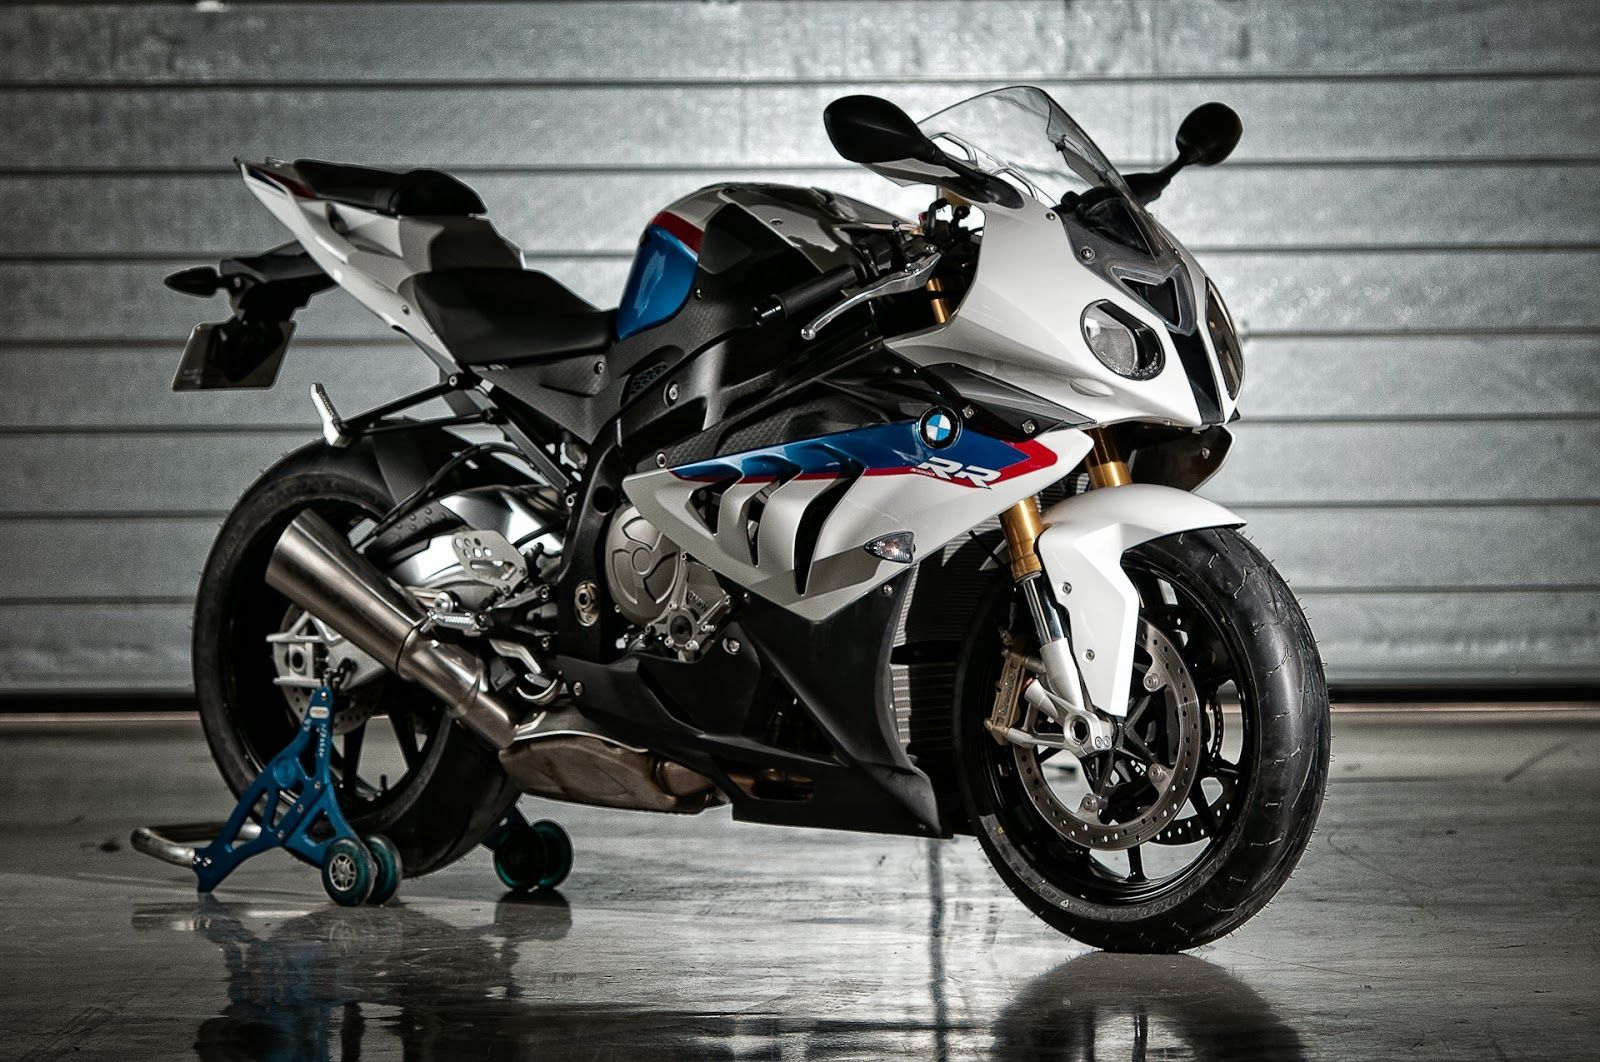 Bmw S1000rr Wallpapers Wallpaper Cave Bmw S1000rr Bmw S1000rr Wallpapers S1000rr Wallpapers